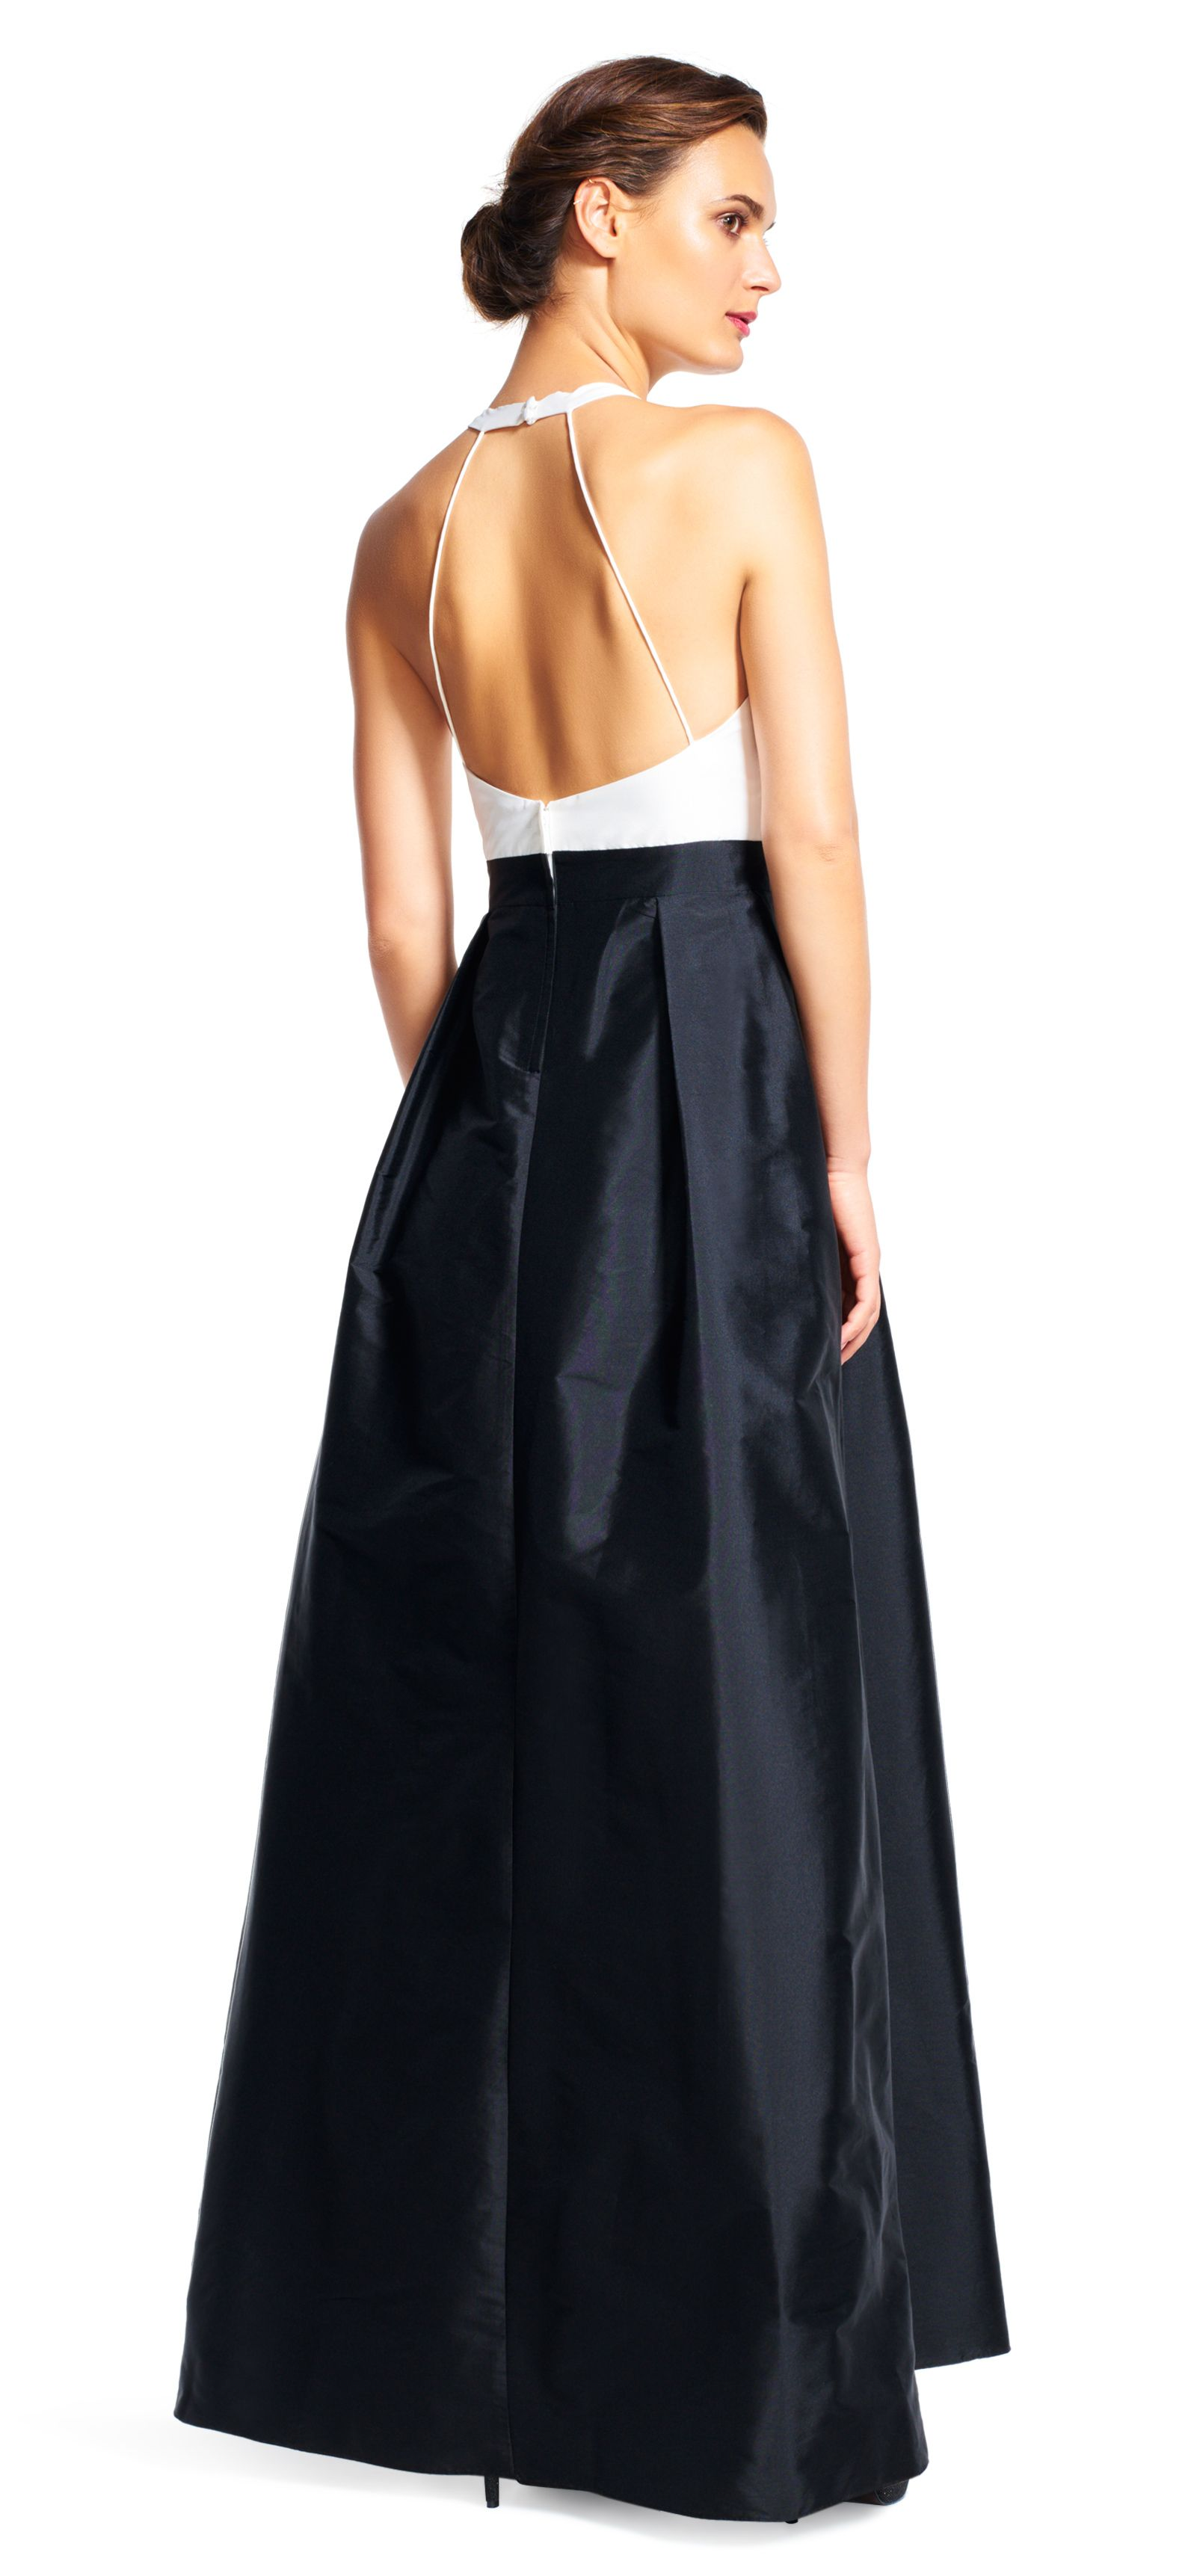 ab56230808 adrianna papell colorblock halter ball gown with open back